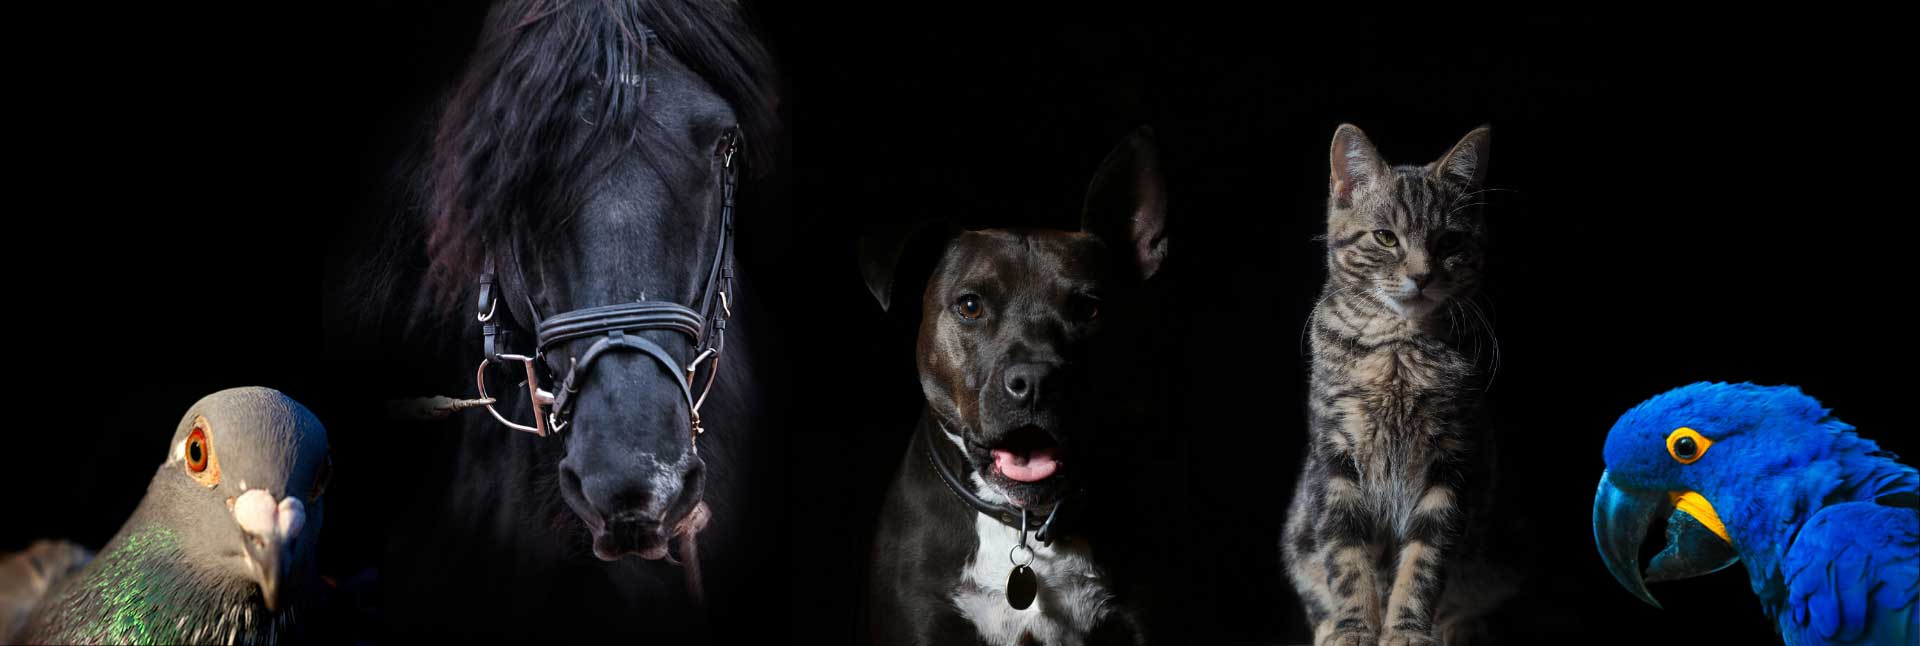 Pigeon, horse, dog, cat and parrot on black background